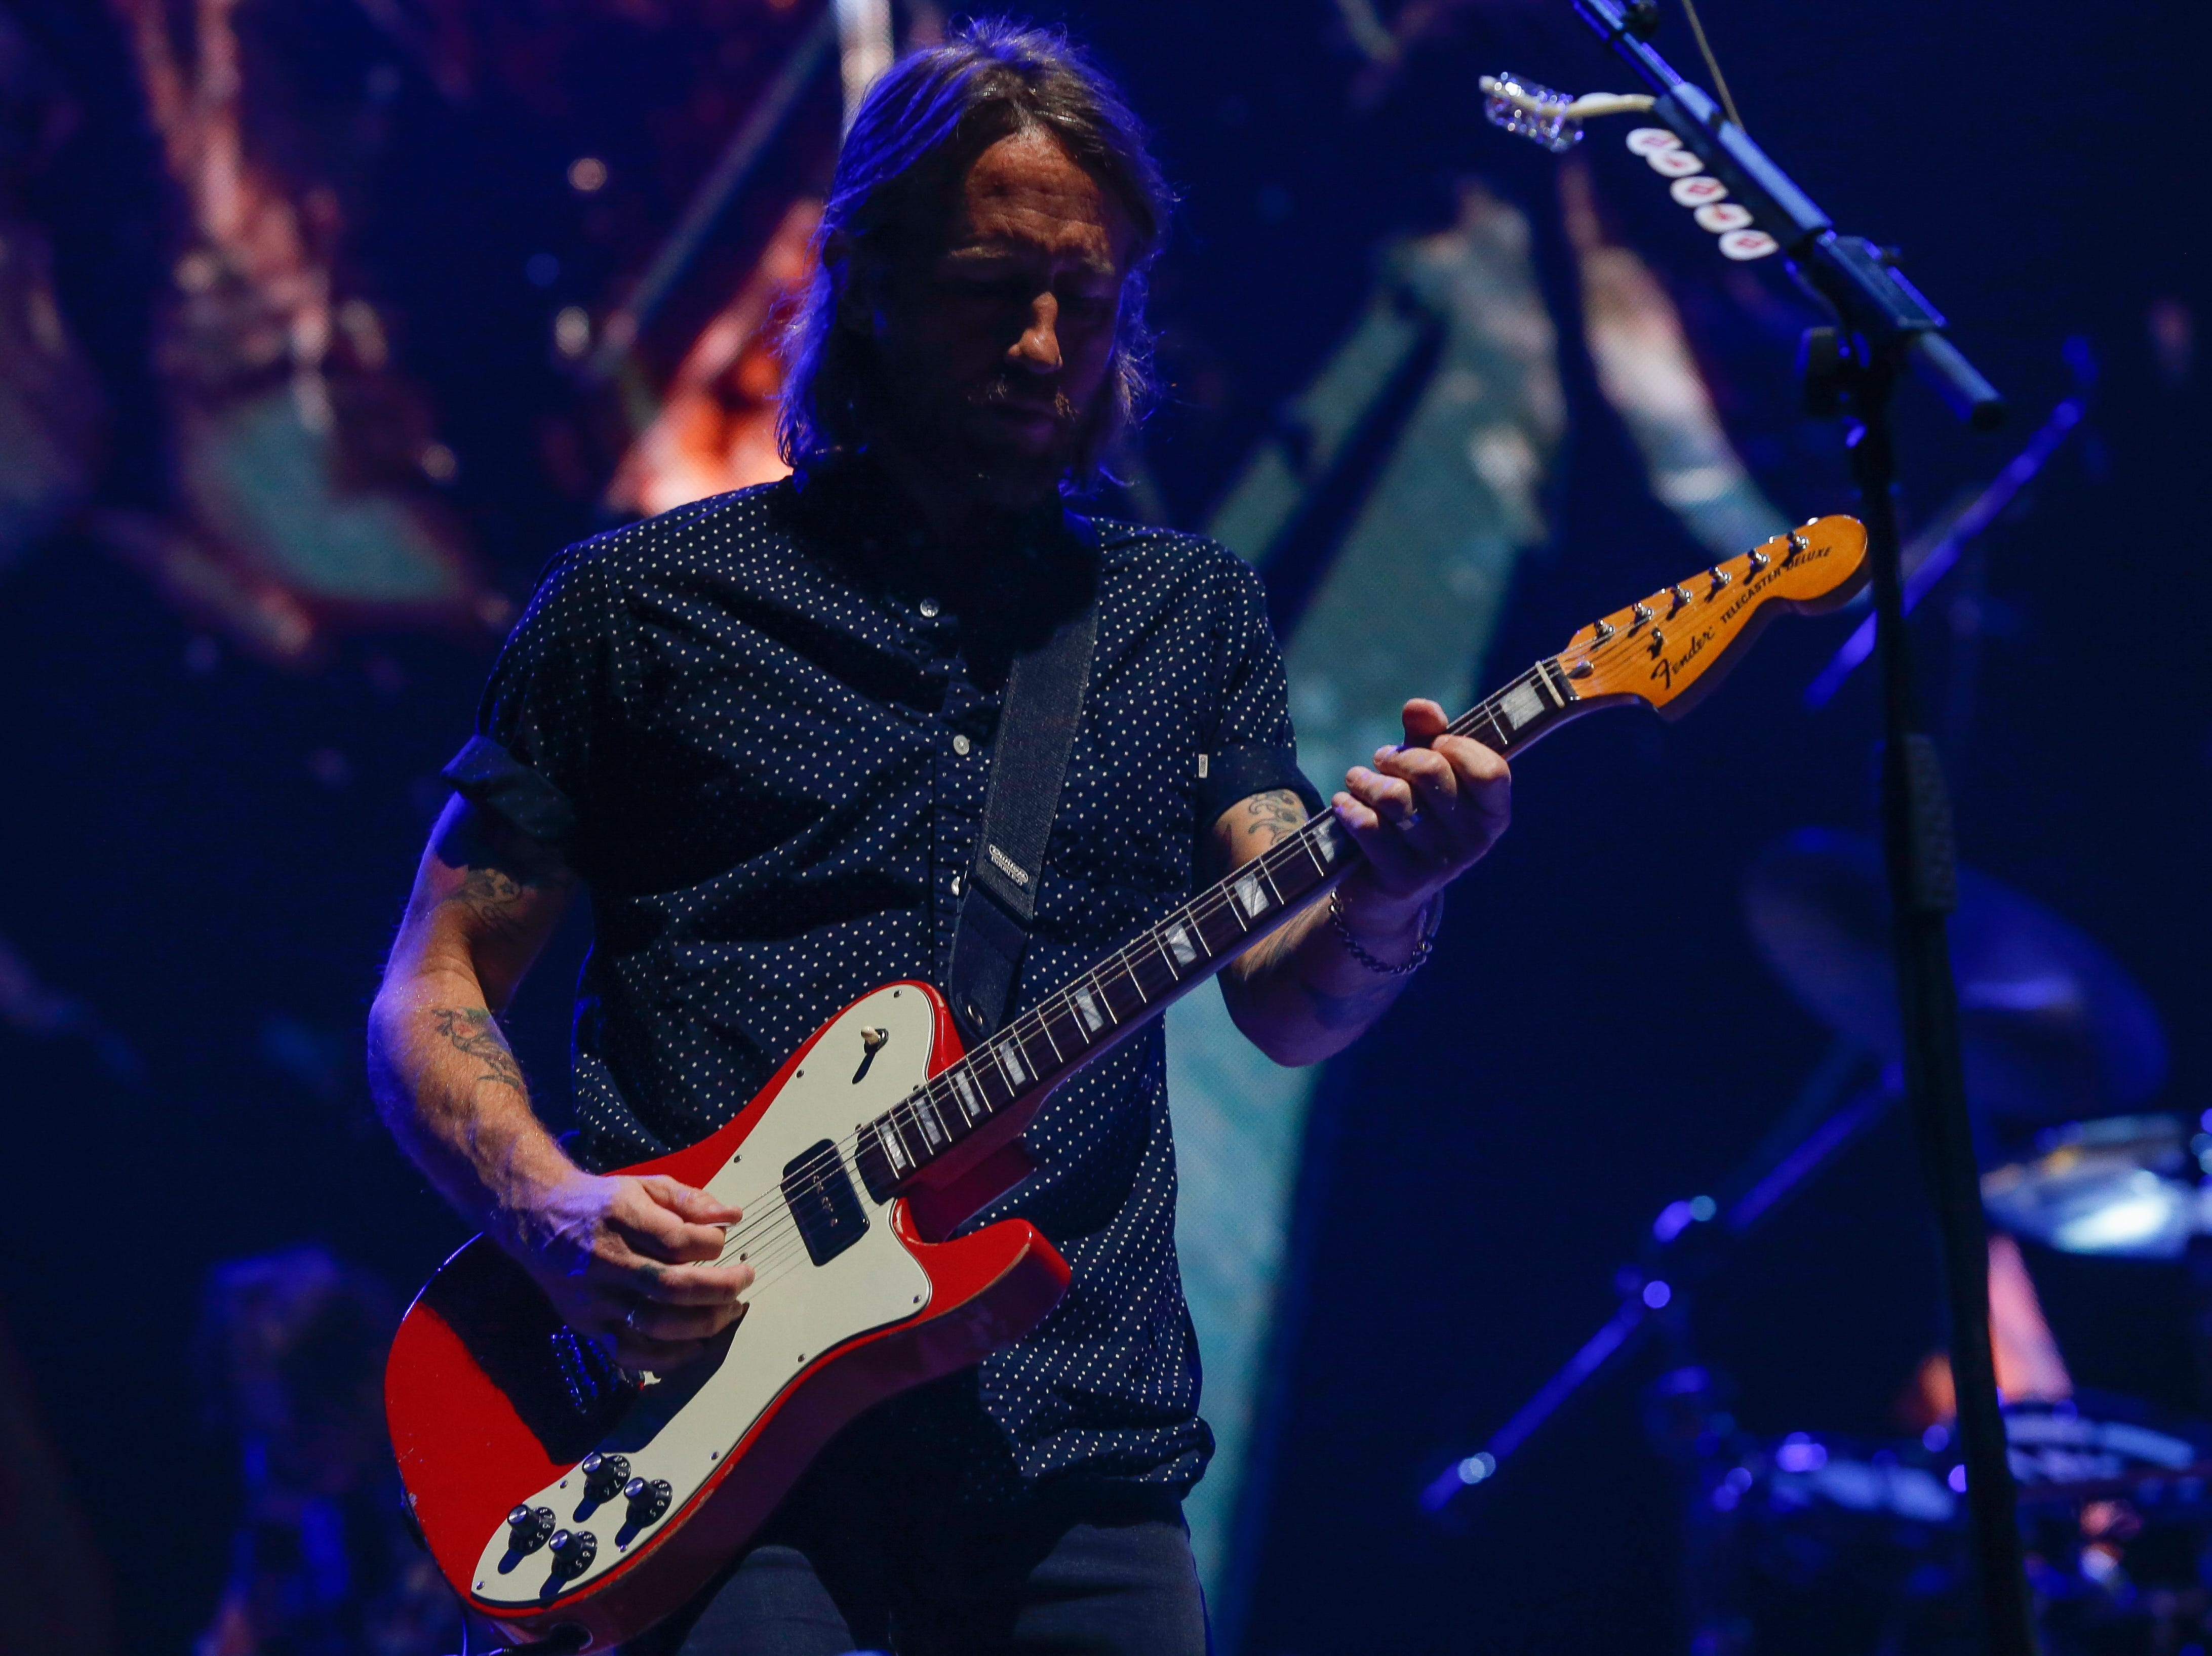 Chris Shiflett plays lead guitar for the Foo Fighters at Little Caesars Arena Monday night.